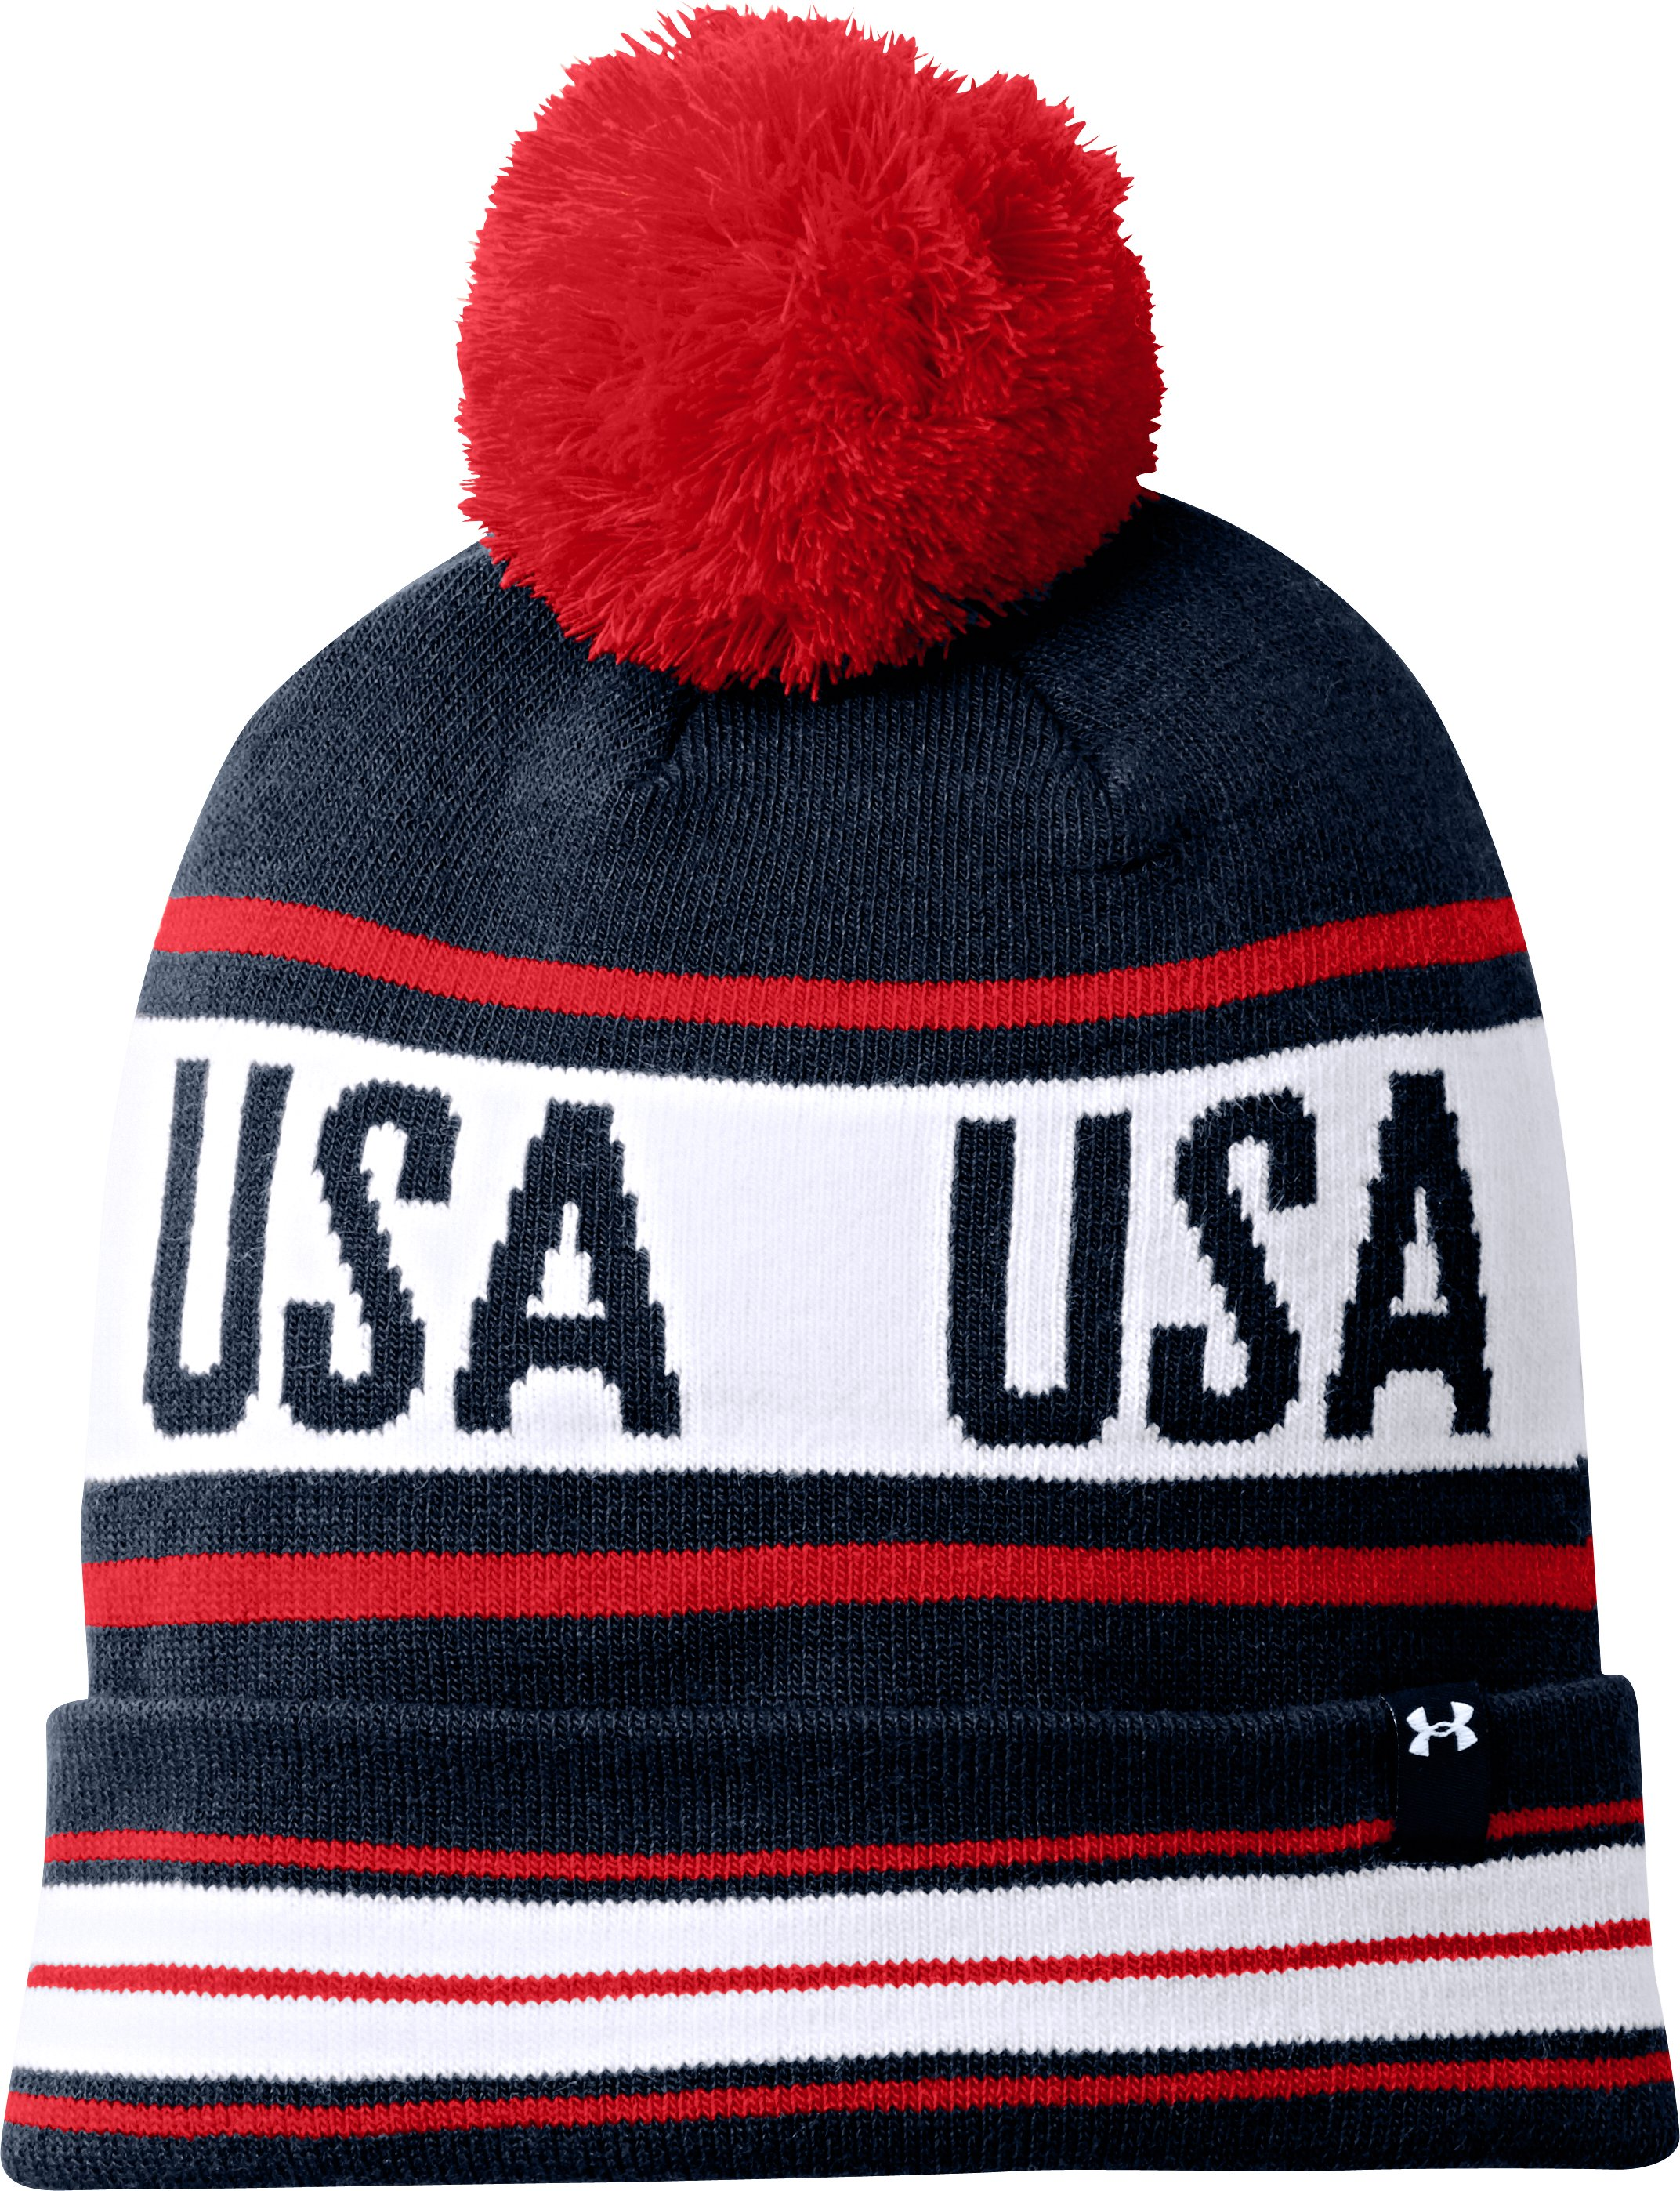 Men's Retro Pom Beanie, Academy